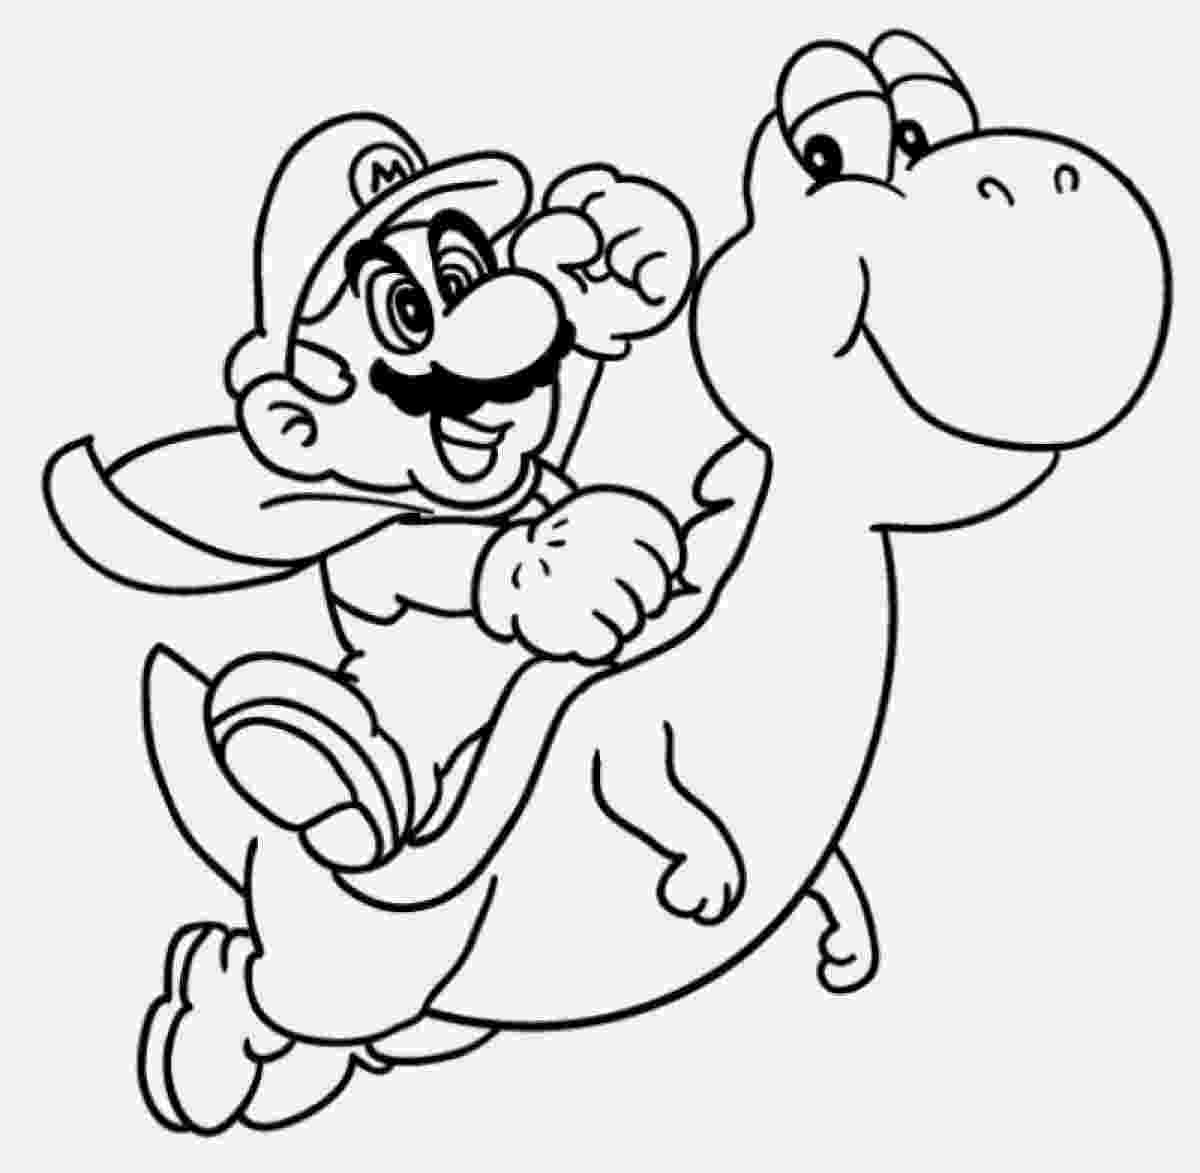 super mario bros printable coloring pages super mario bros 151 video games printable coloring pages mario super pages bros coloring printable